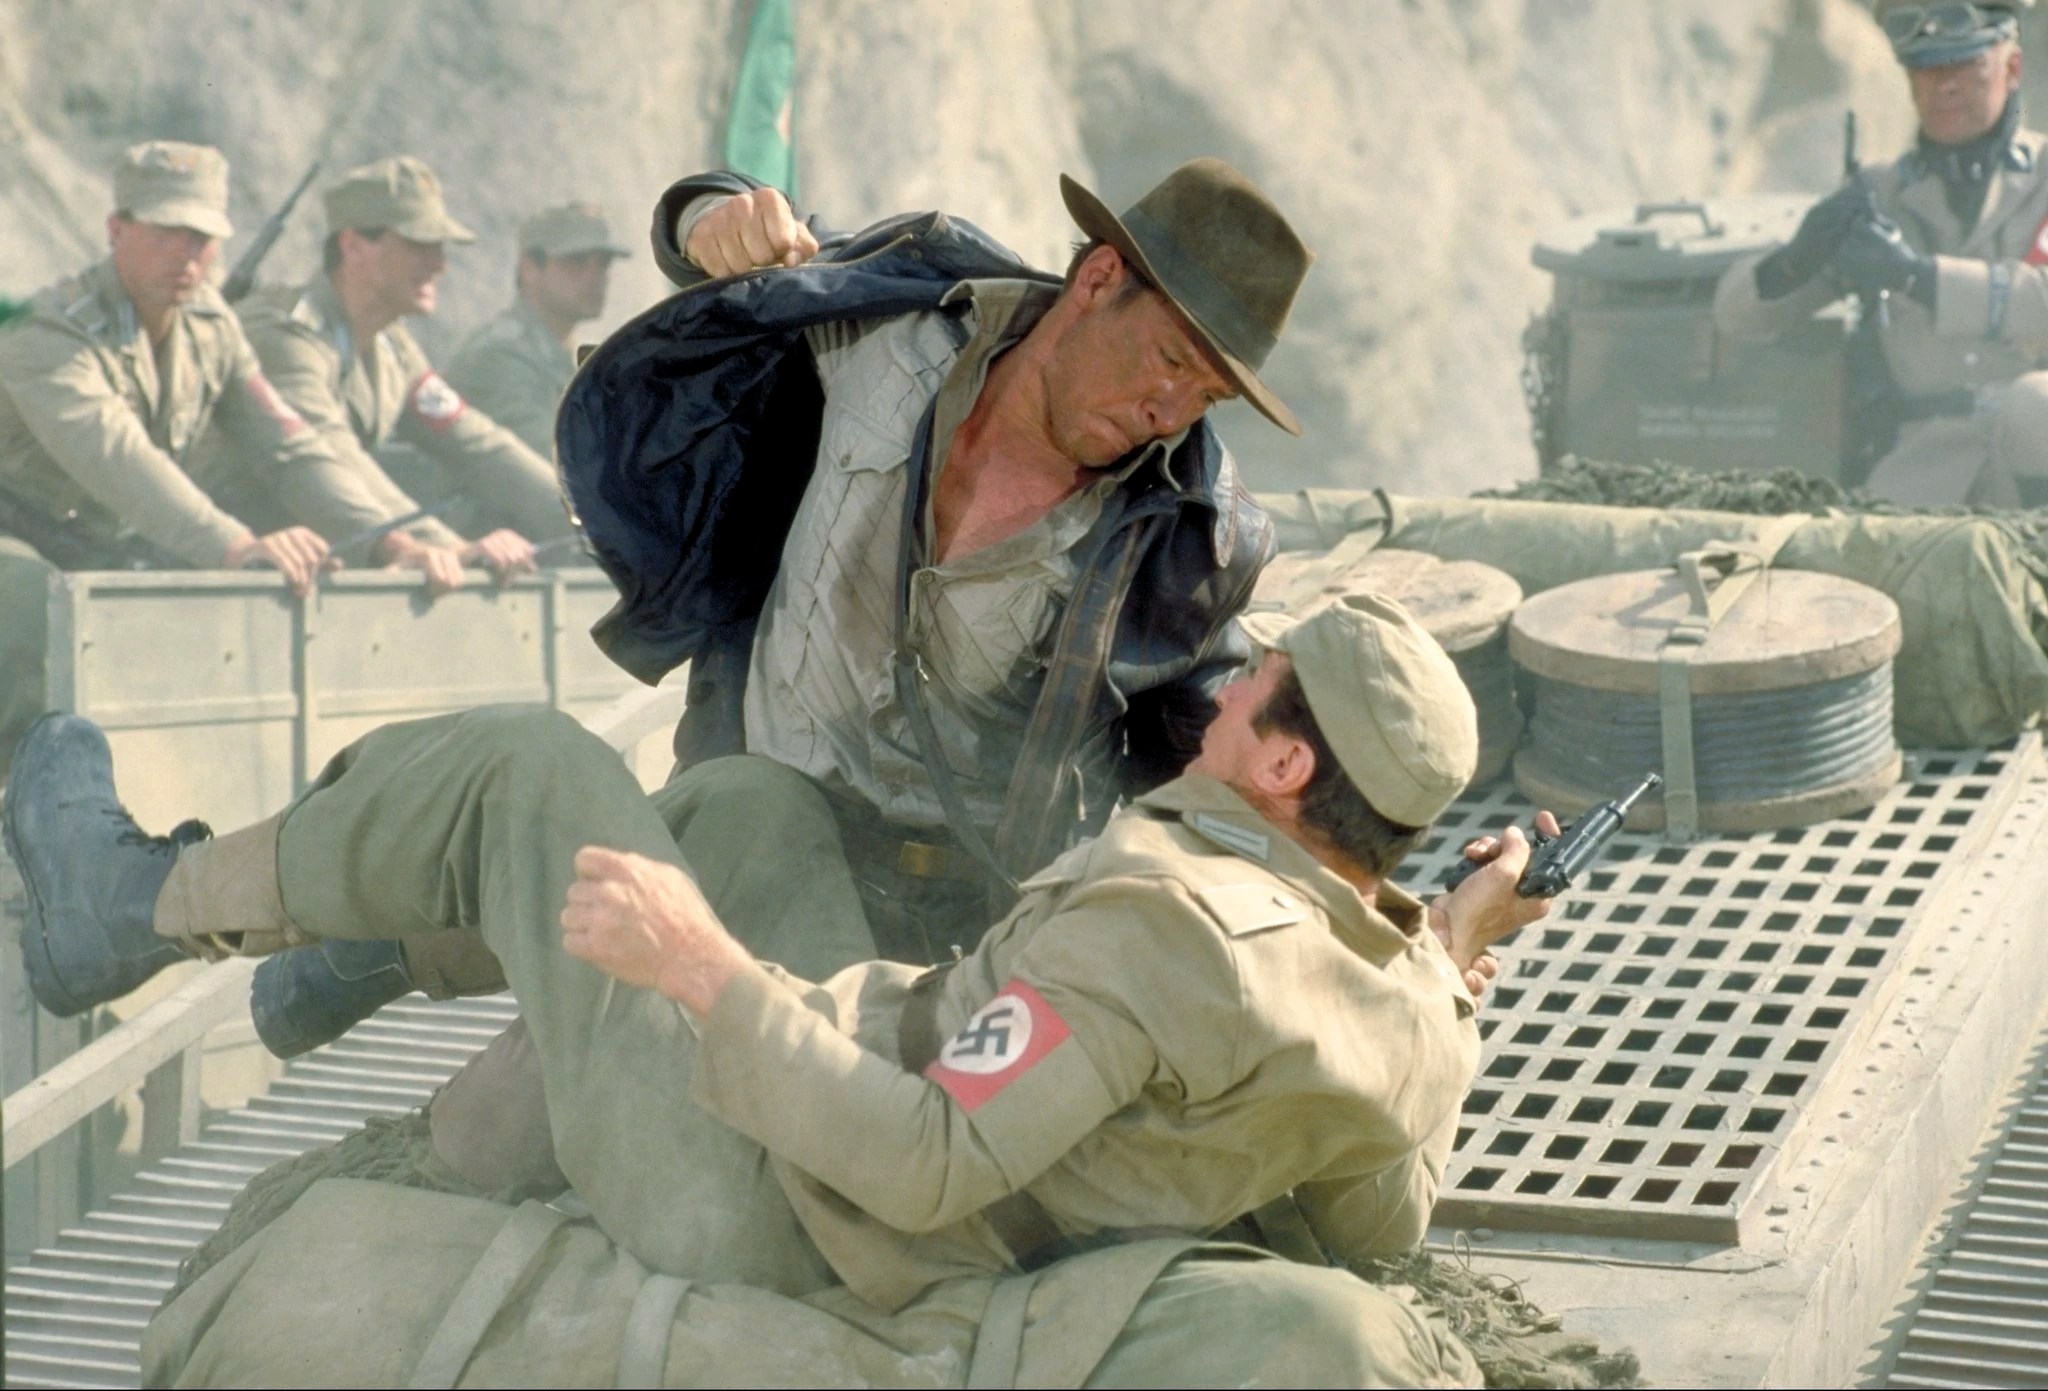 Indiana Jones fistfight on speeding tank